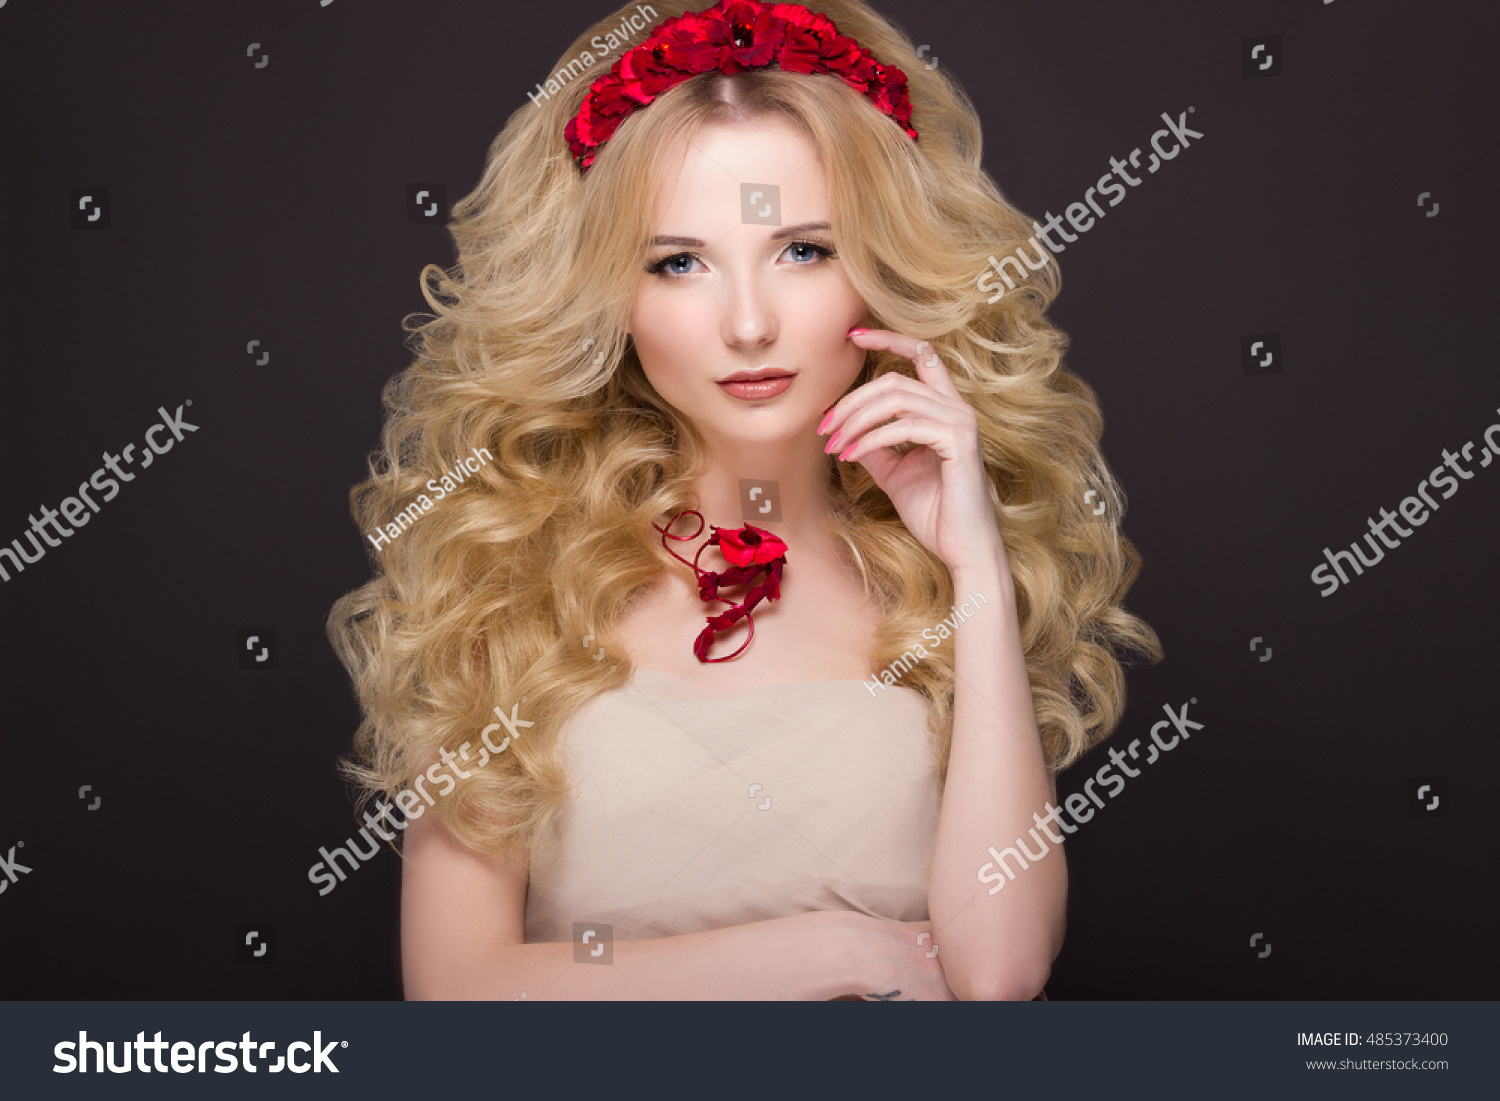 med to haircuts royalty free beautiful model with curly hair 4999